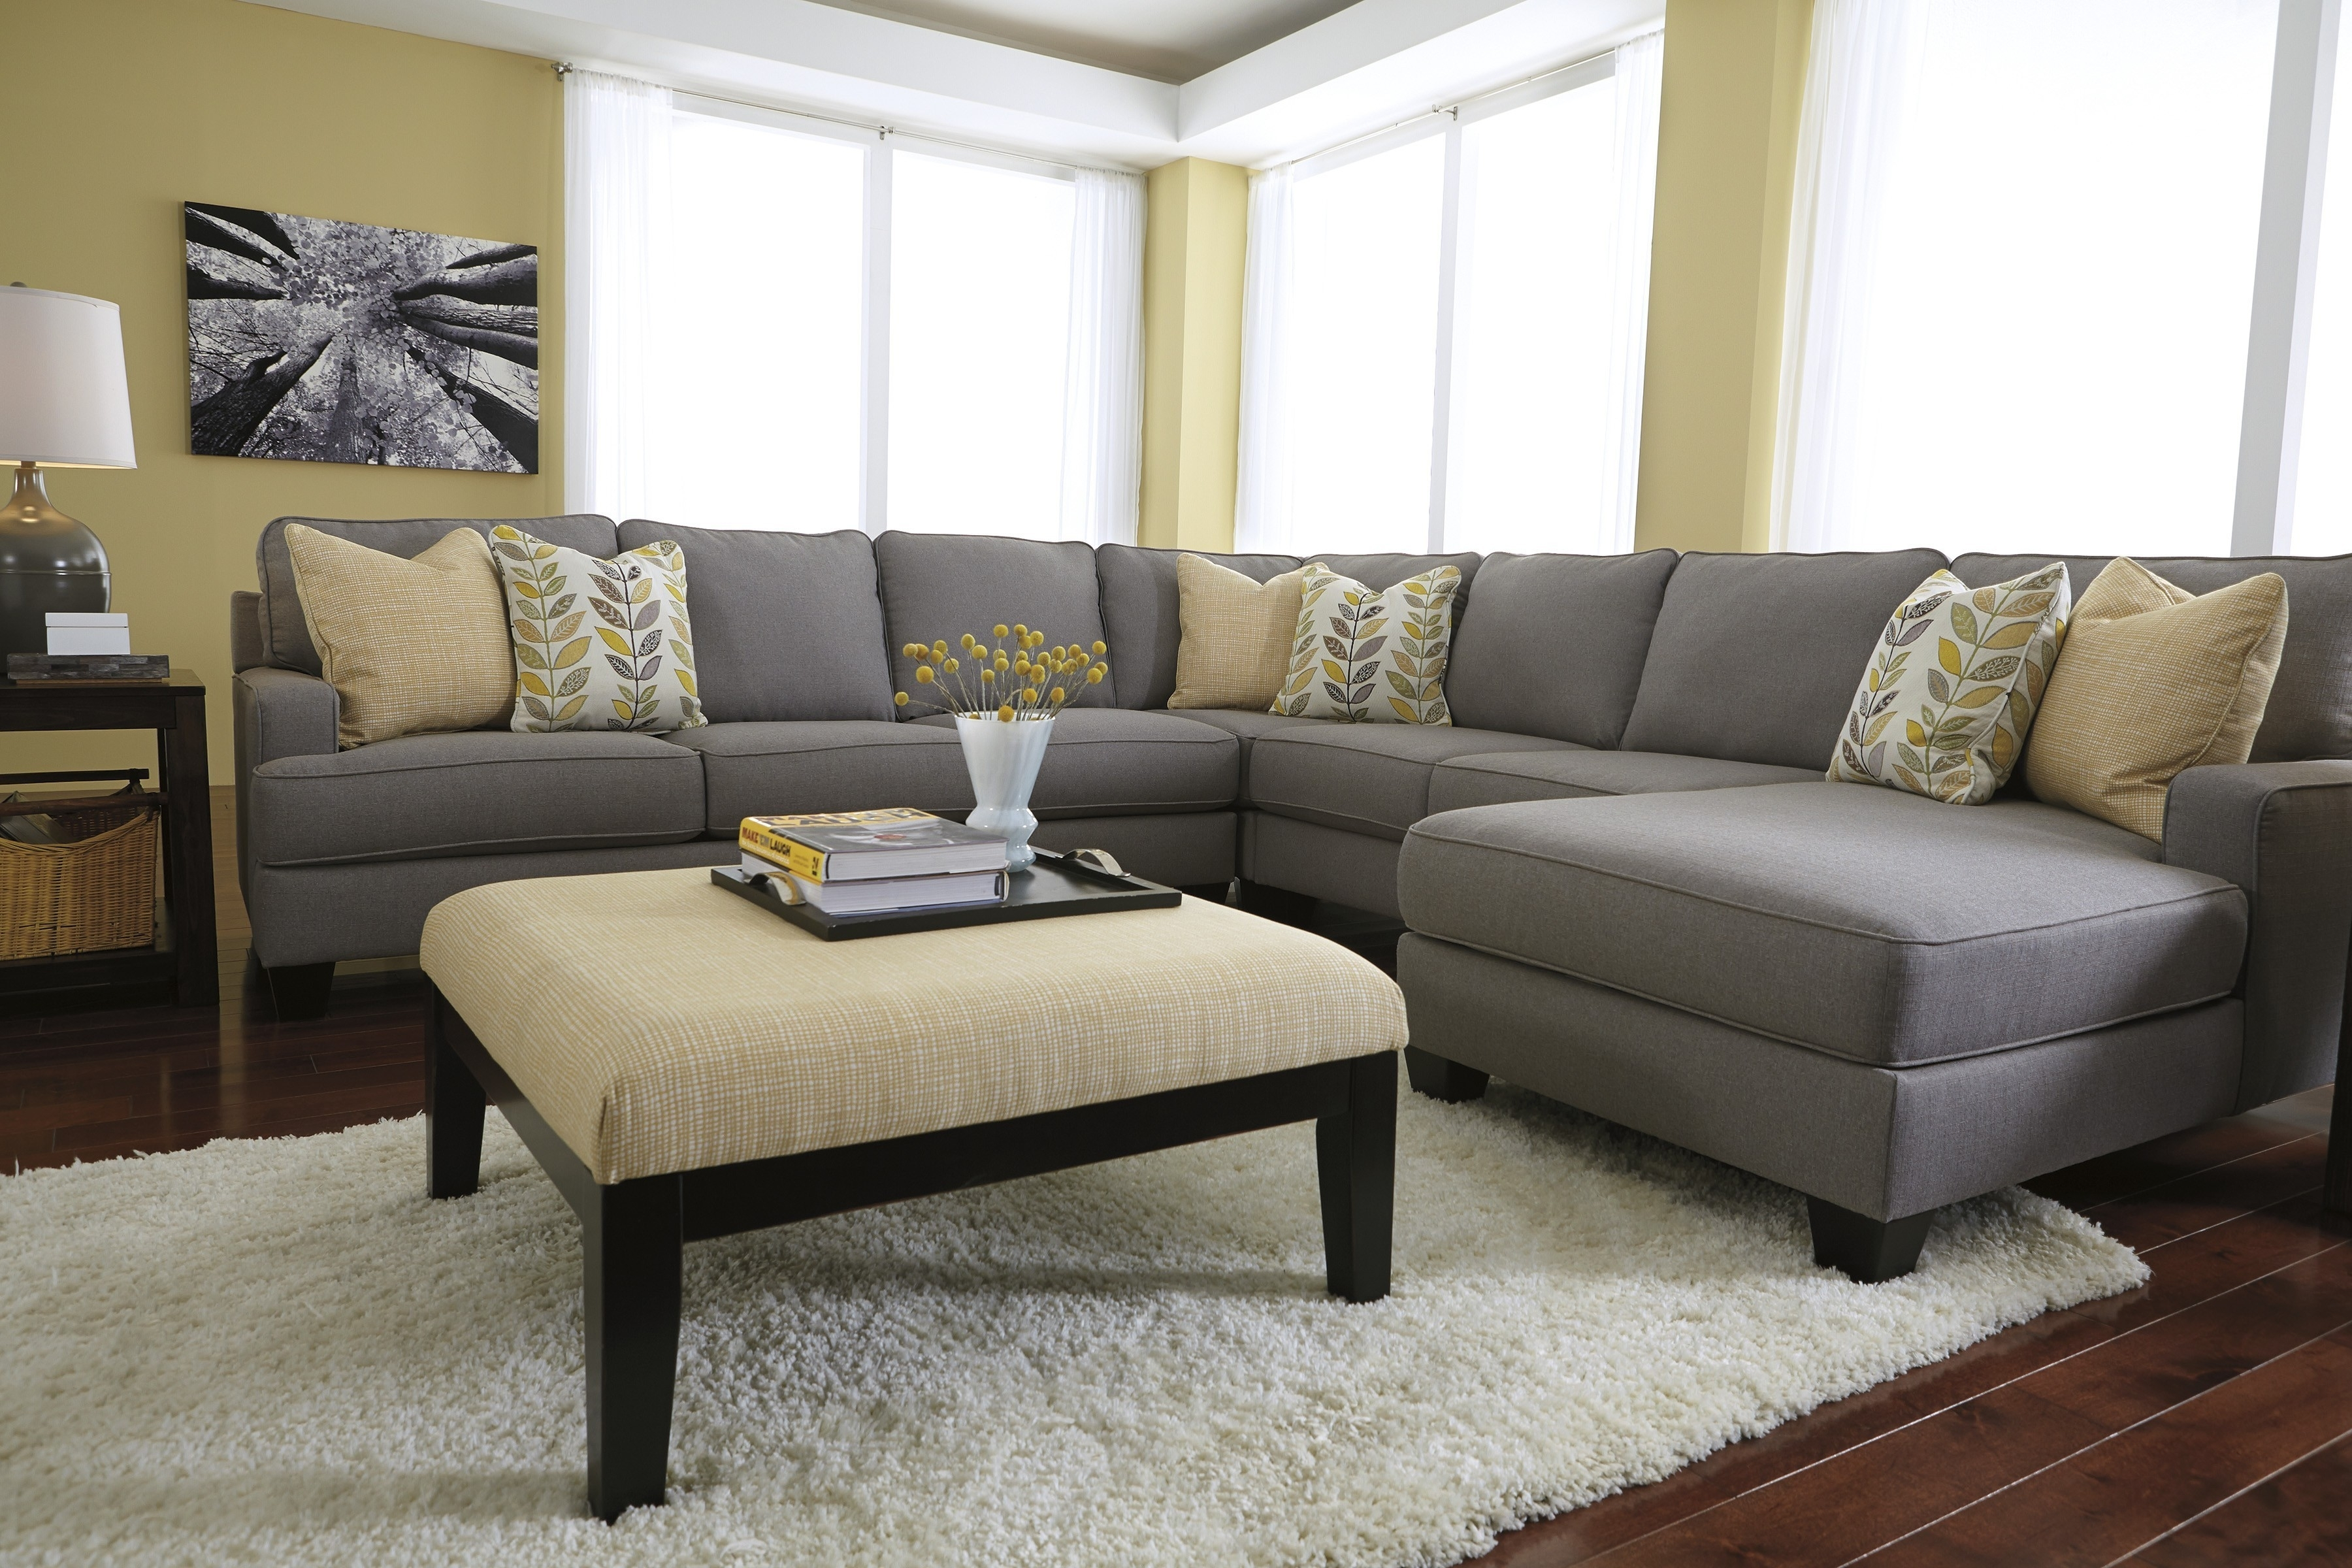 Why You Should Choose A Small Sectional Sofas | Ifresh Design Within Small Sectional Sofas With Chaise And Ottoman (Image 10 of 10)